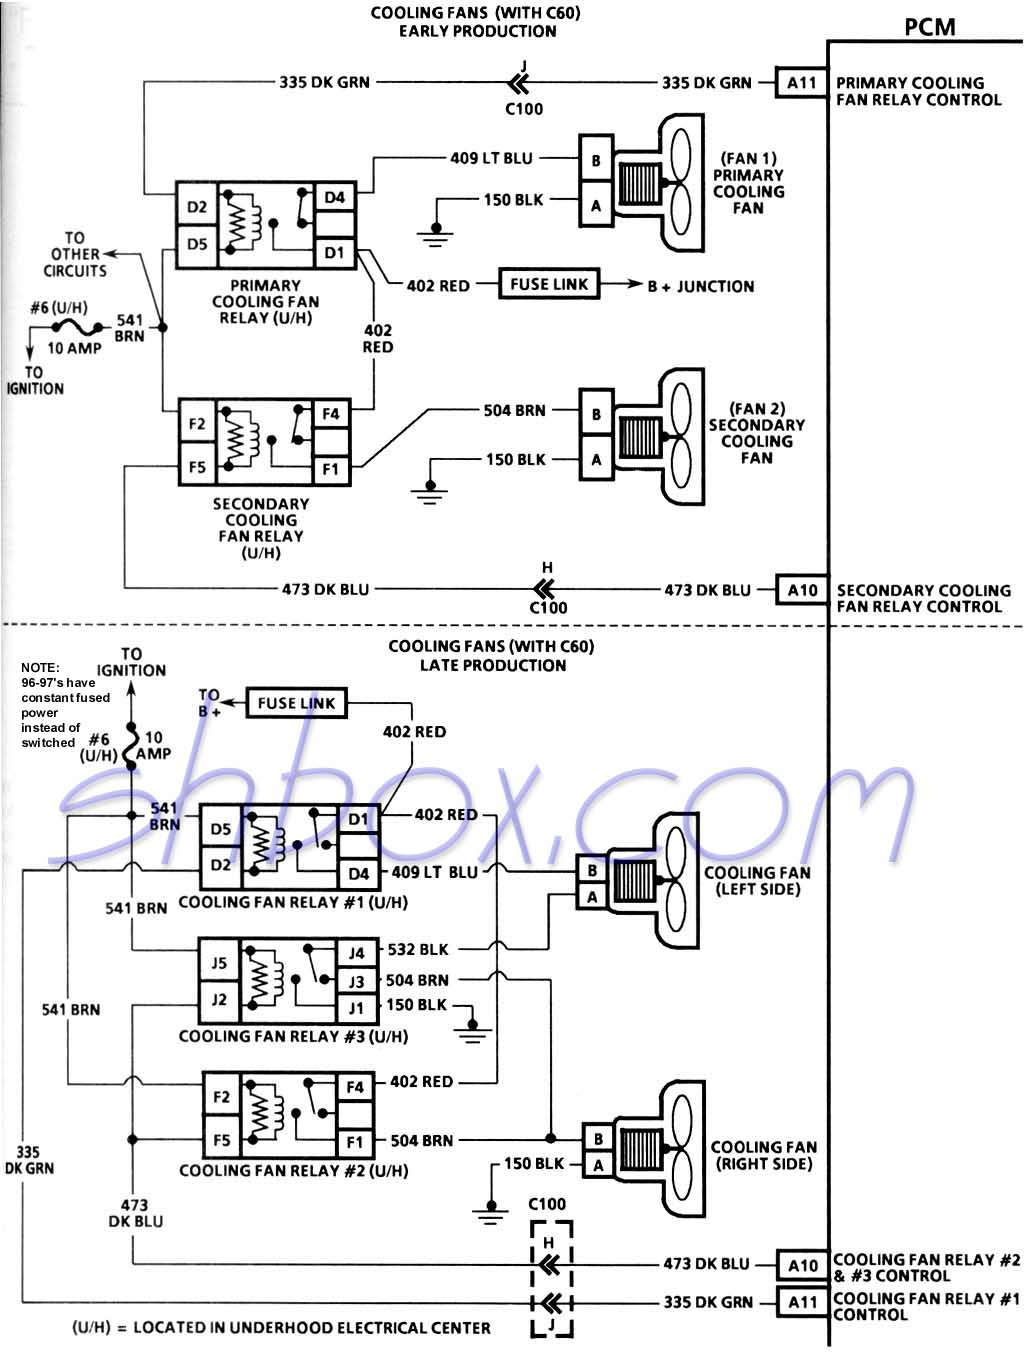 P 0900c1528018d3da besides 2qy3m Bolts Hold Engine Bell Housing 1999 moreover Besides 2001 Chevy Silverado Abs Brake Line Diagram Additionally 2002 together with Relay Switch For Fuel Pump Location as well 1968 Mustang Wiring Diagram Vacuum Schematics. on 89 chevy silverado